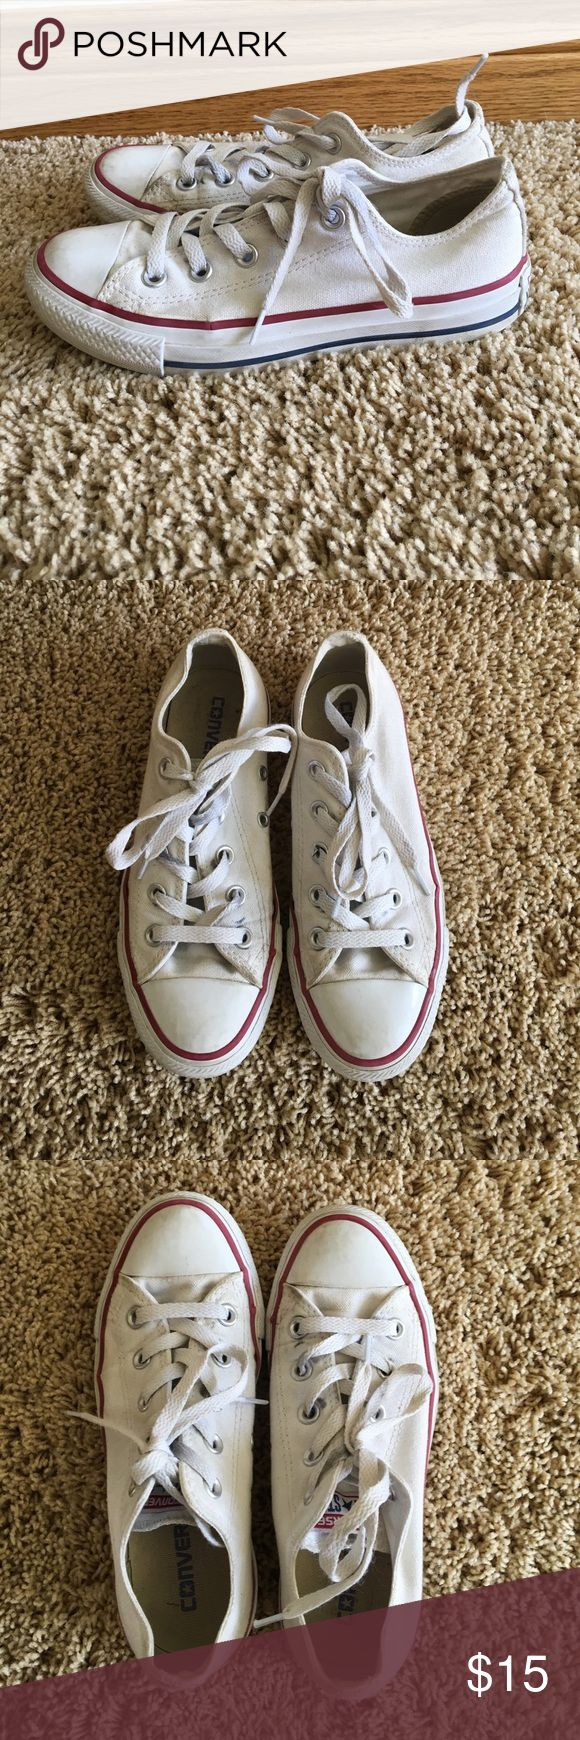 White low top converse Have been worn multiple times. A little dirty but still could be worn plenty more! I'm sure the dirt would come out when washed. On the shoe tongue it says US size 5, but on the bottom of the show it says 3 Converse Shoes Sneakers